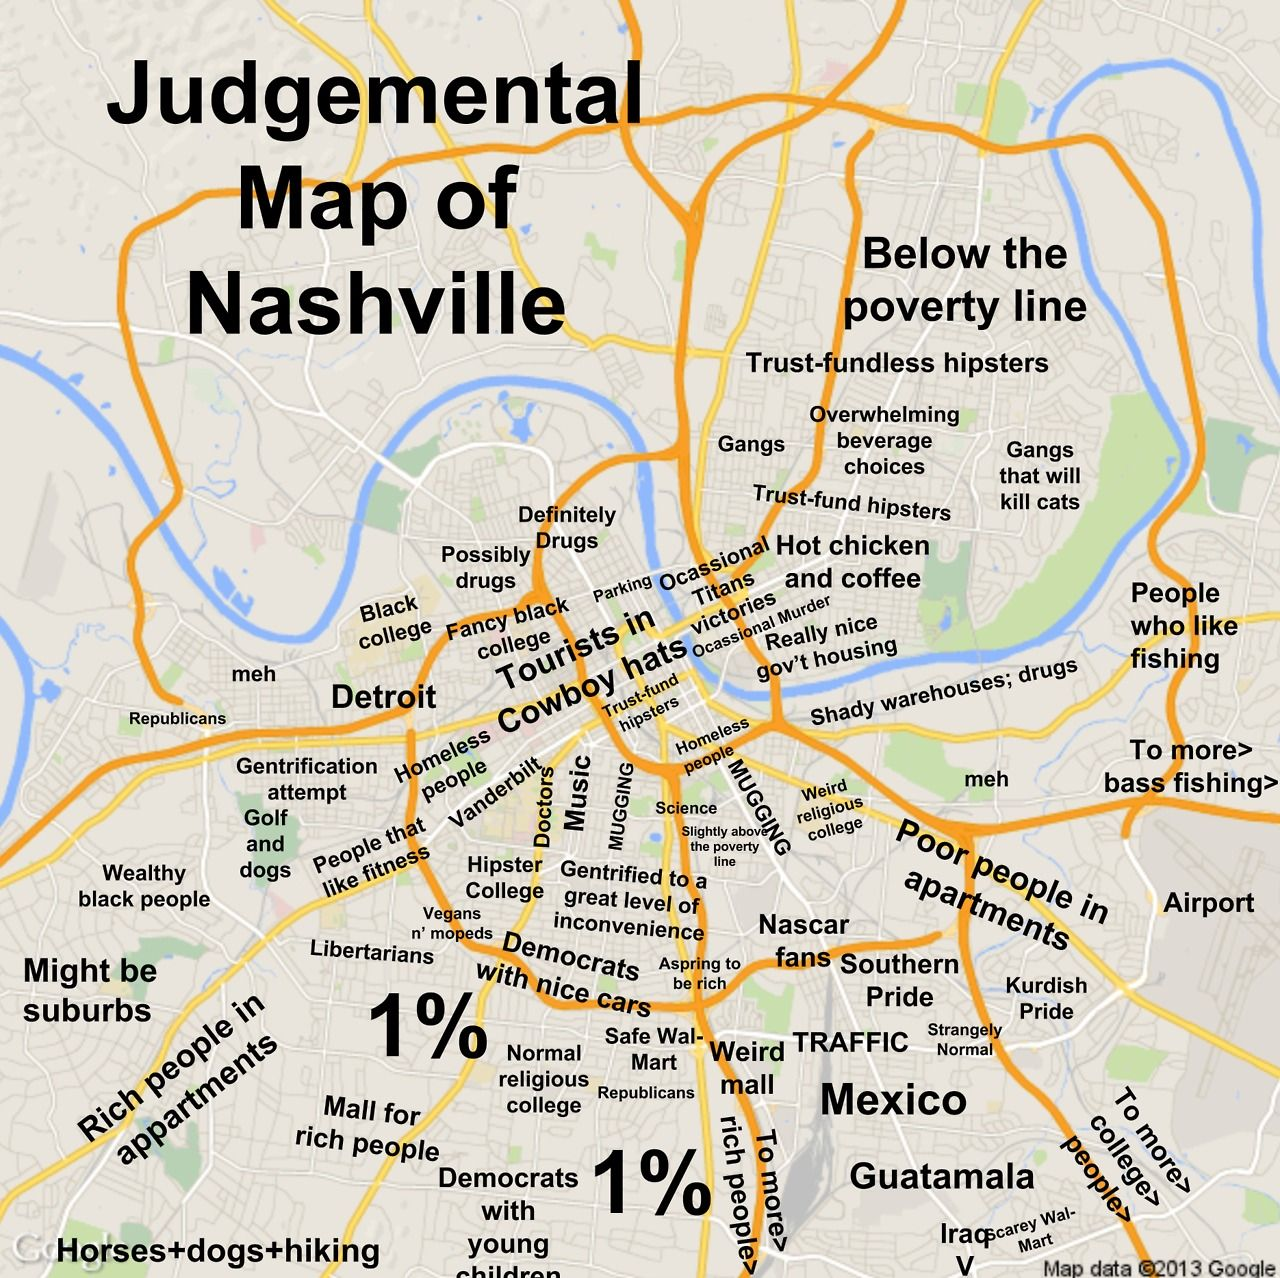 Nashville Neighborhood Map Judgy Maps Divide Neighborhoods Into Their Worst Stereotypes